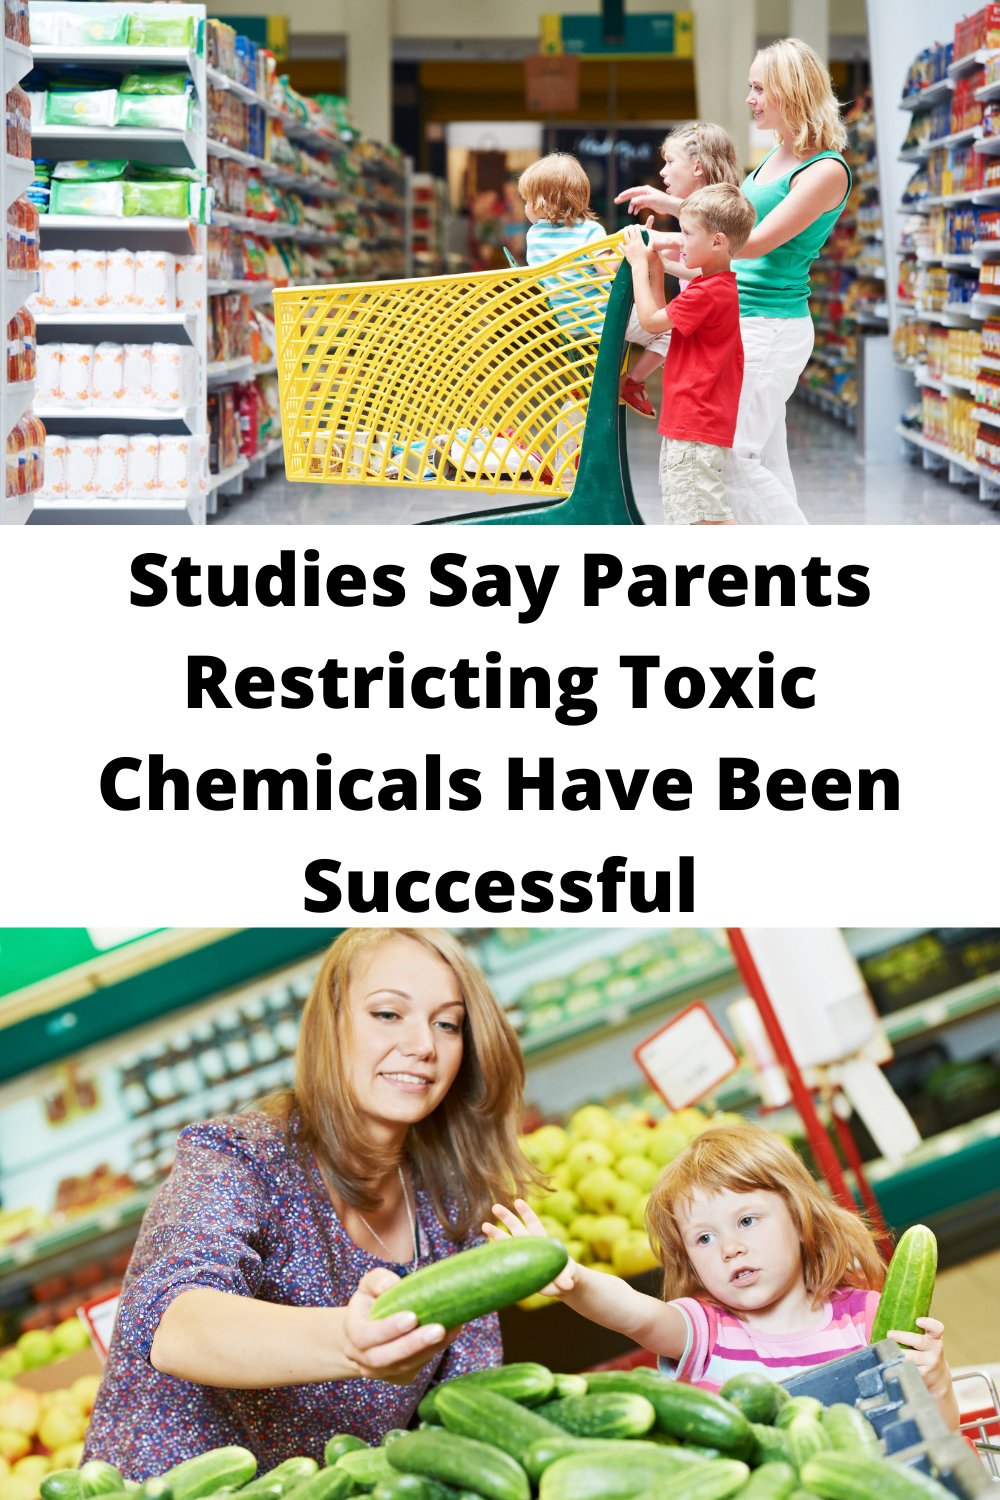 Studies Say Parents Restricting Toxic Chemicals Have Been Successful